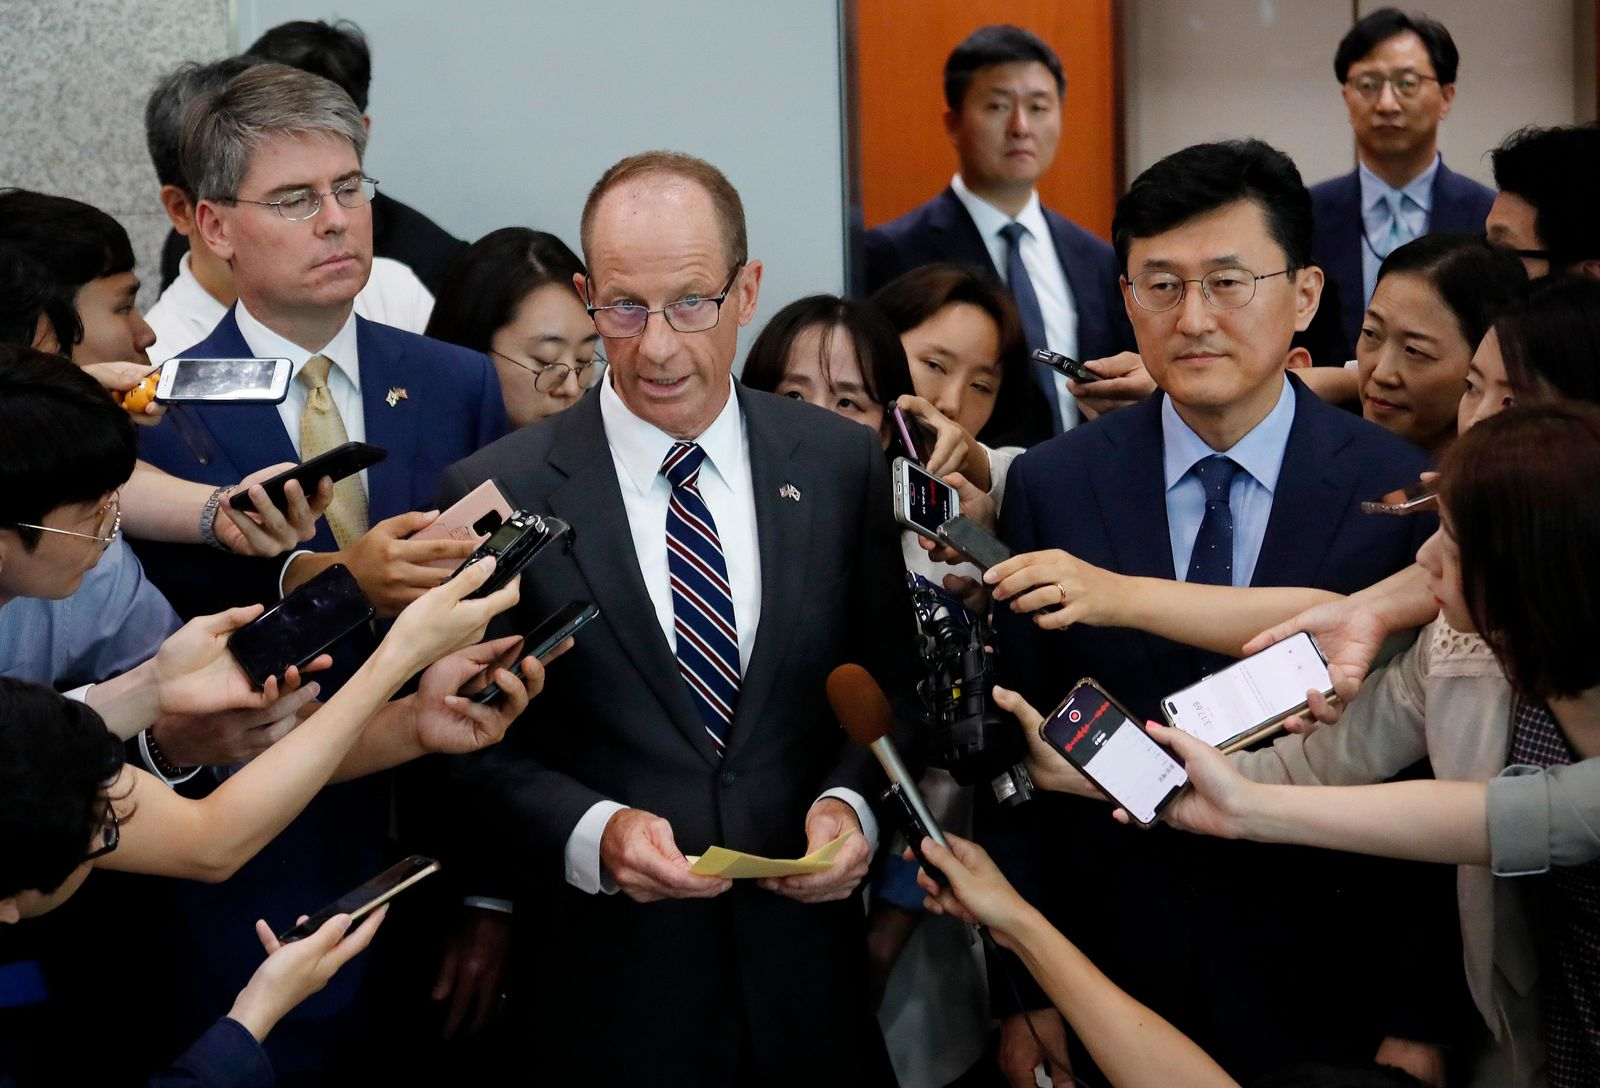 David Stilwell, center left, U.S. Assistant Secretary of State for the Bureau of East Asian and Pacific Affairs, speaks as South Korea's Deputy Foreign Minister for Political Affairs Yoon Soon-gu, center right, listens after a meeting with South Korean Foreign Minister Kang Kyung-wha at the foreign ministry in Seoul, South Korea, Wednesday, July 17, 2019. (AP Photo/Ahn Young-joon. Pool)